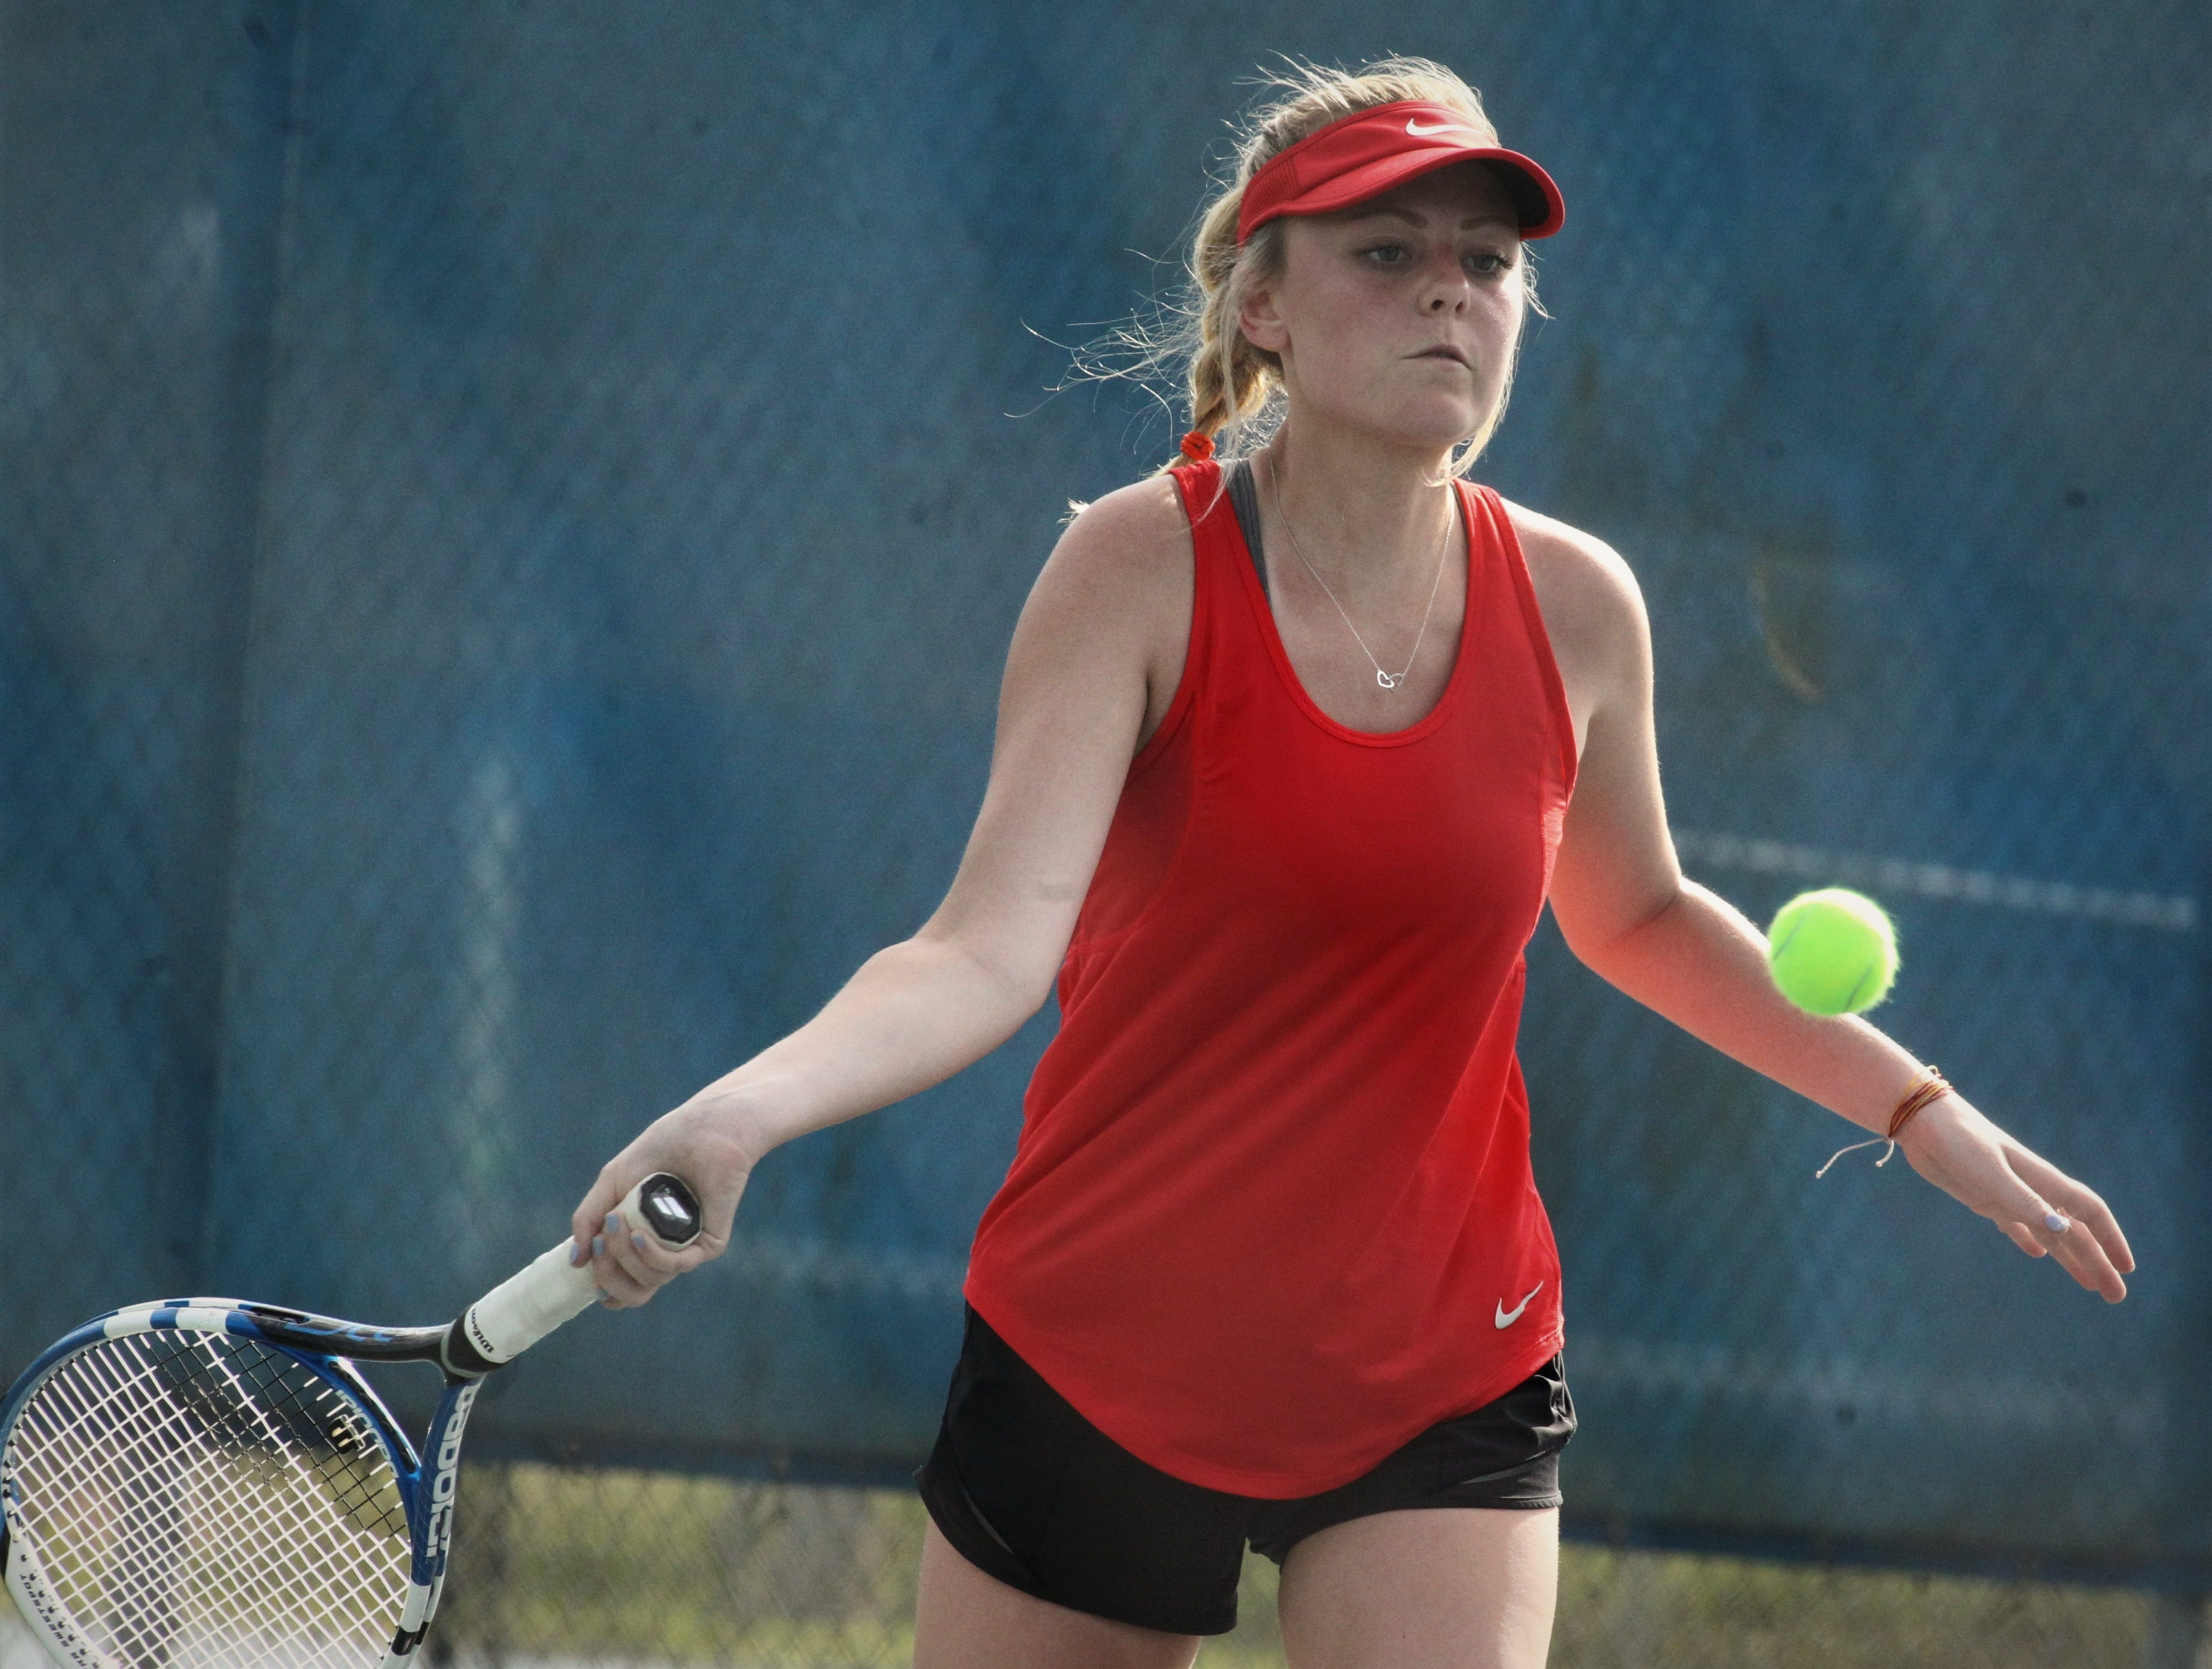 Leon senior Abby Birkmeier plays during the boys and girls tennis city tournament at Tom Brown Park on March 13, 2019.